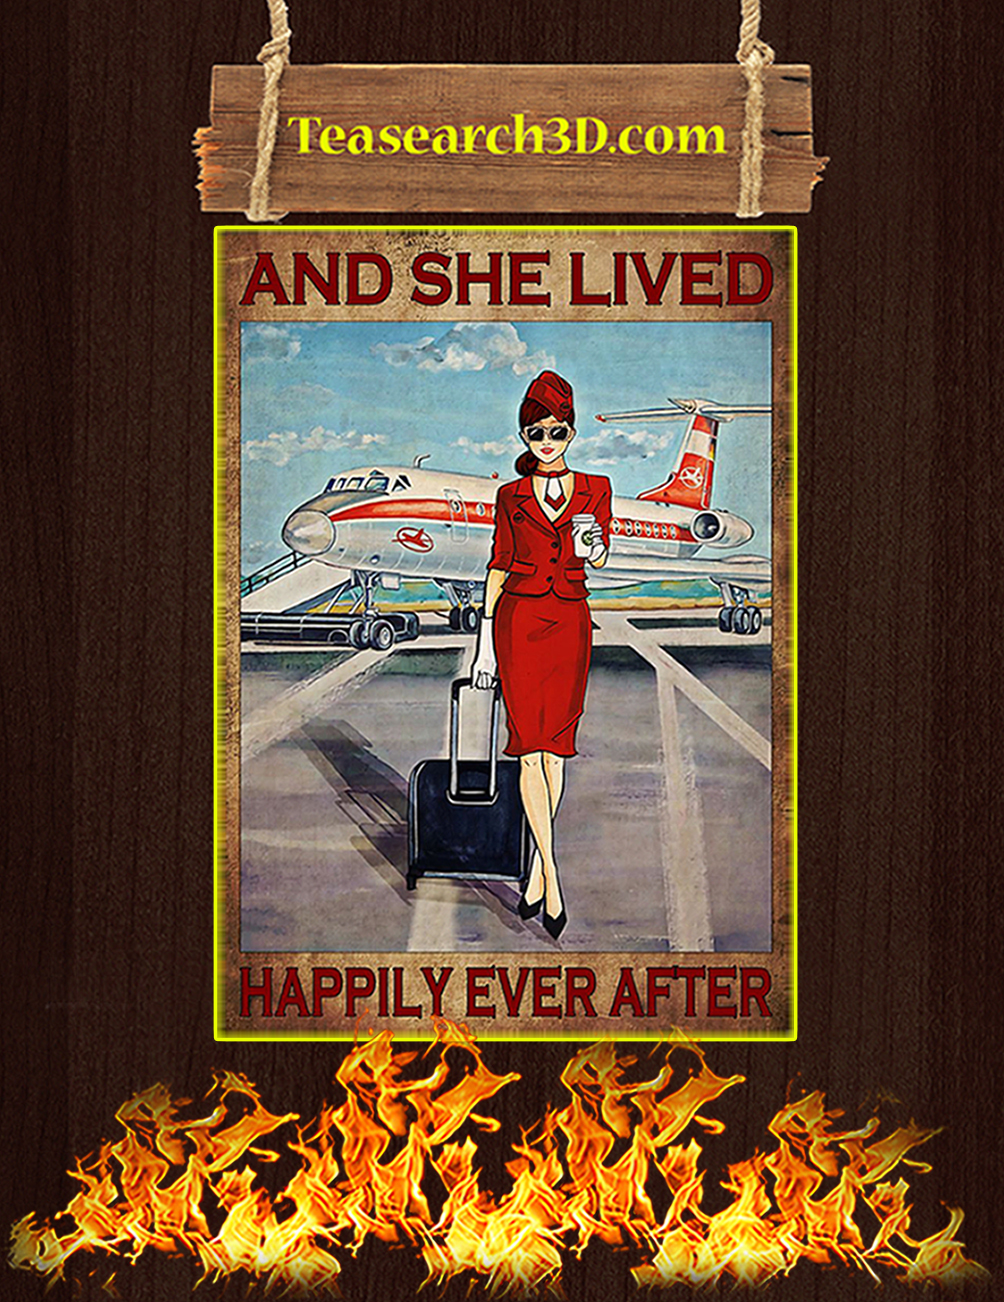 Flight attendant and she lived happily ever after red poster 1